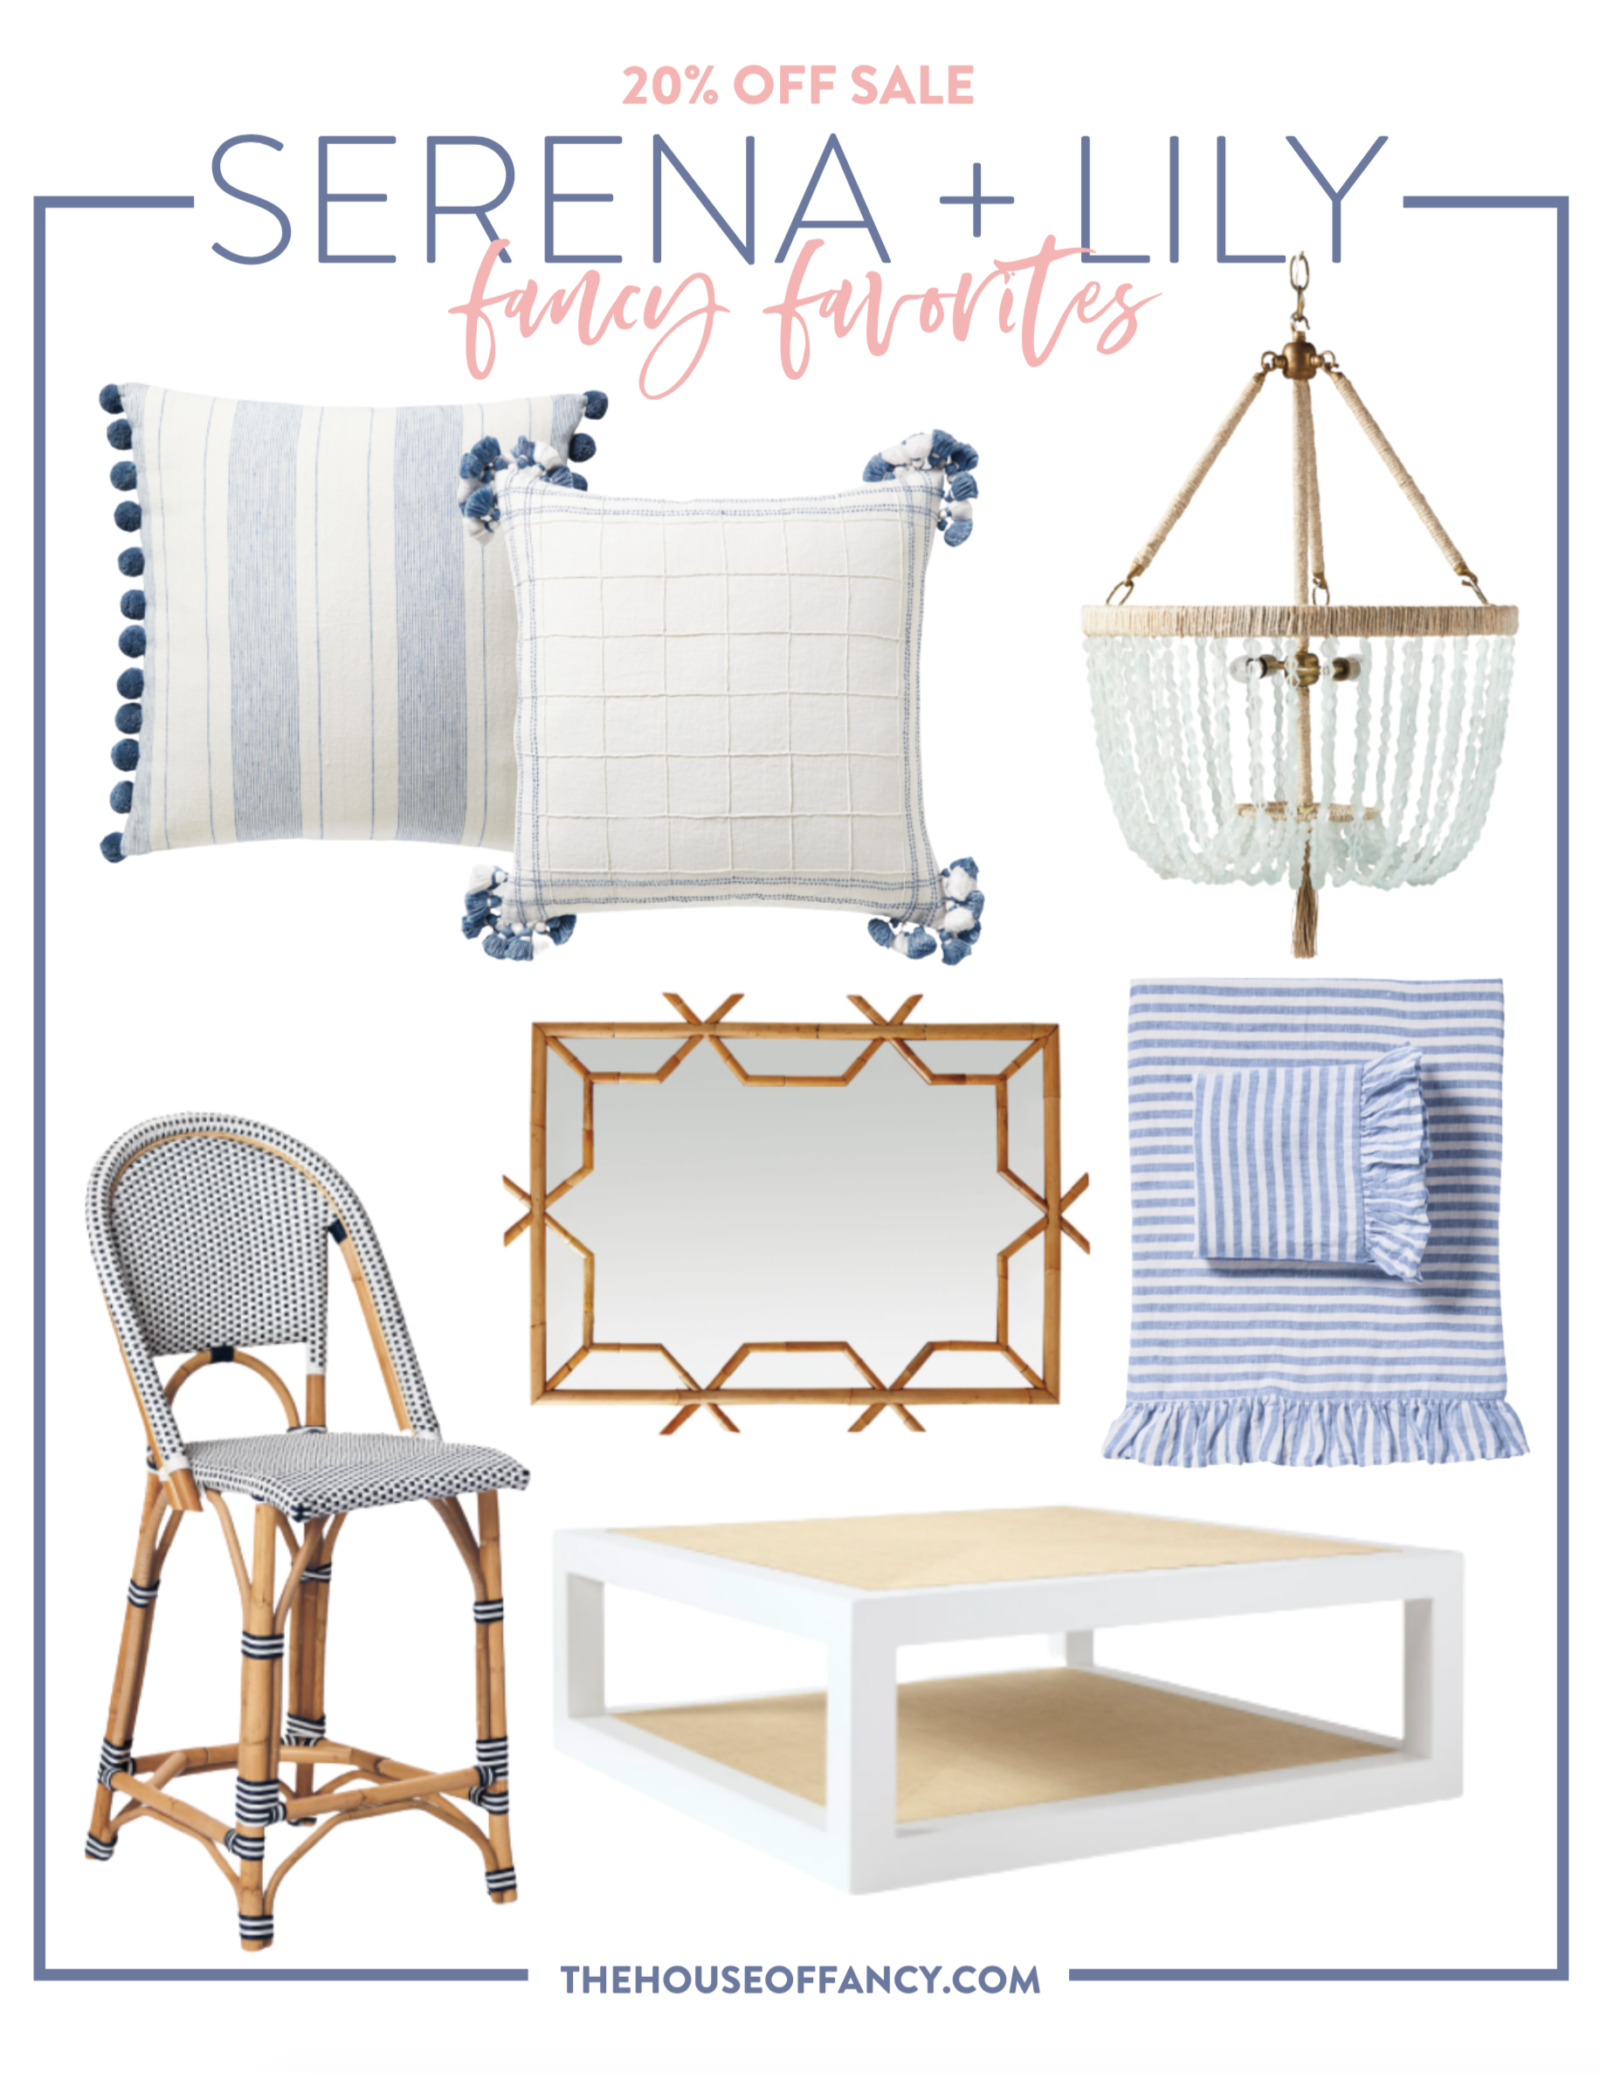 Memorial Day Sales by popular Houston life and style blog, The House of Fancy: collage image of Serena and Lily blue and white throw pillows, Serena and Lily blue bead chandelier, Serena and Lily bamboo frame mirror, Serena and Lily blue and white stripe bedding, Serena and Lily bistro chair, Serena and Lily white and light wood coffee table.